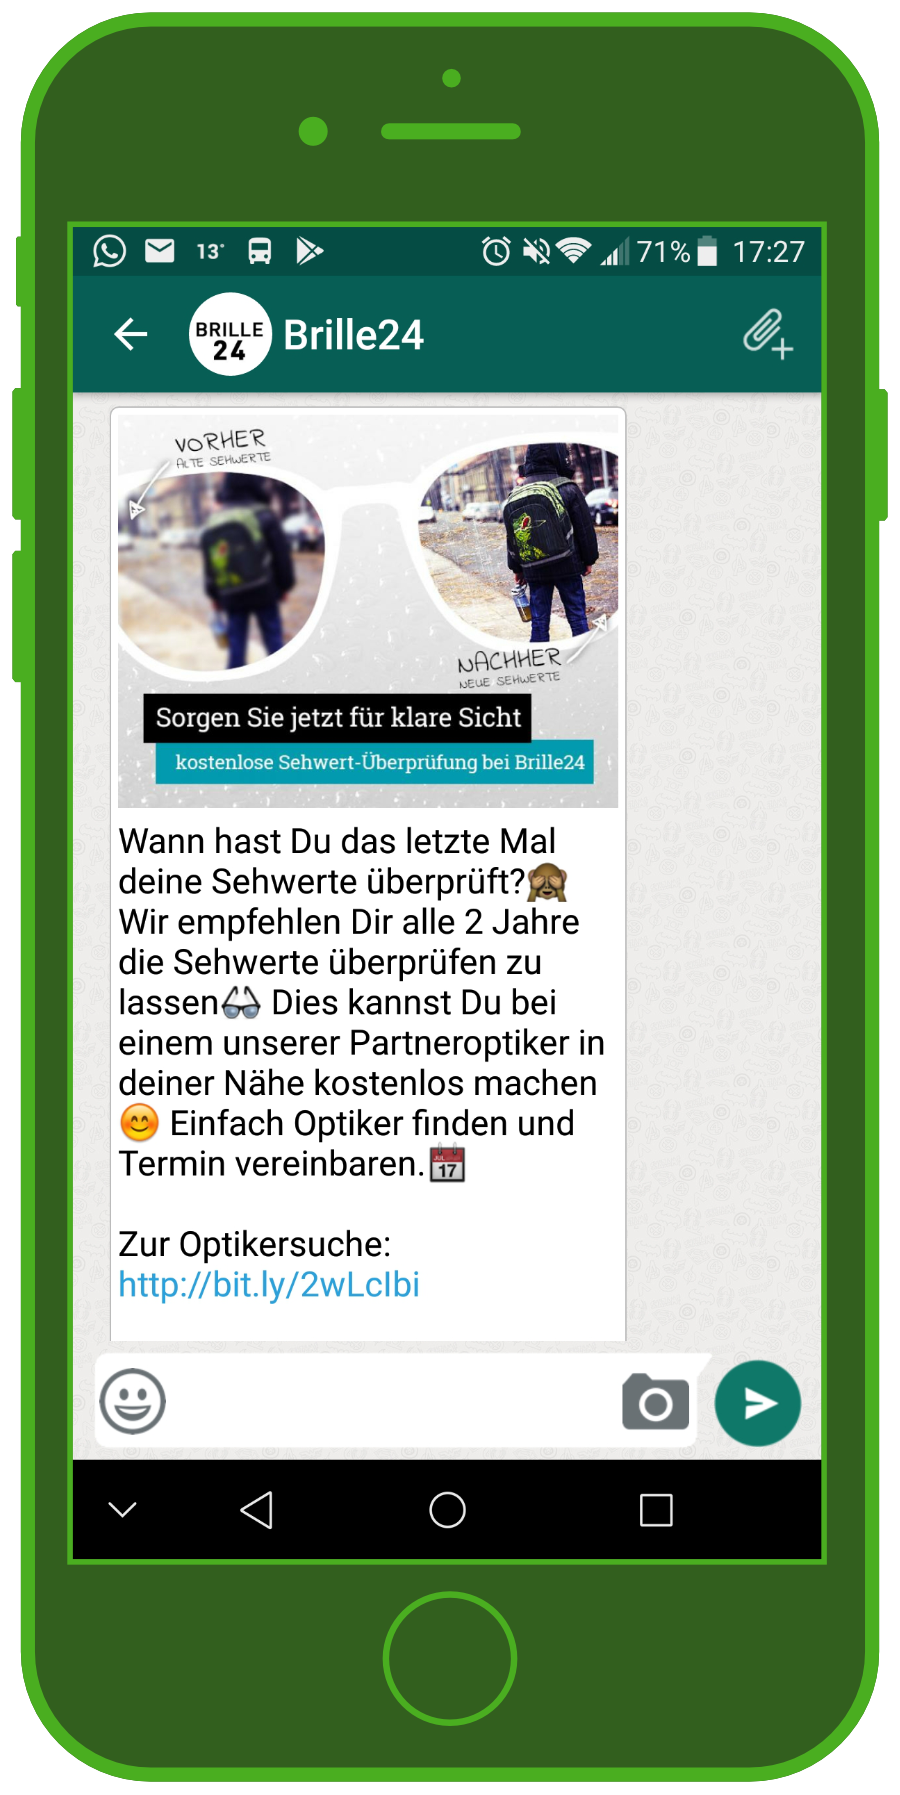 device-brille24-sehtest-1-whatsapp-e-commerce